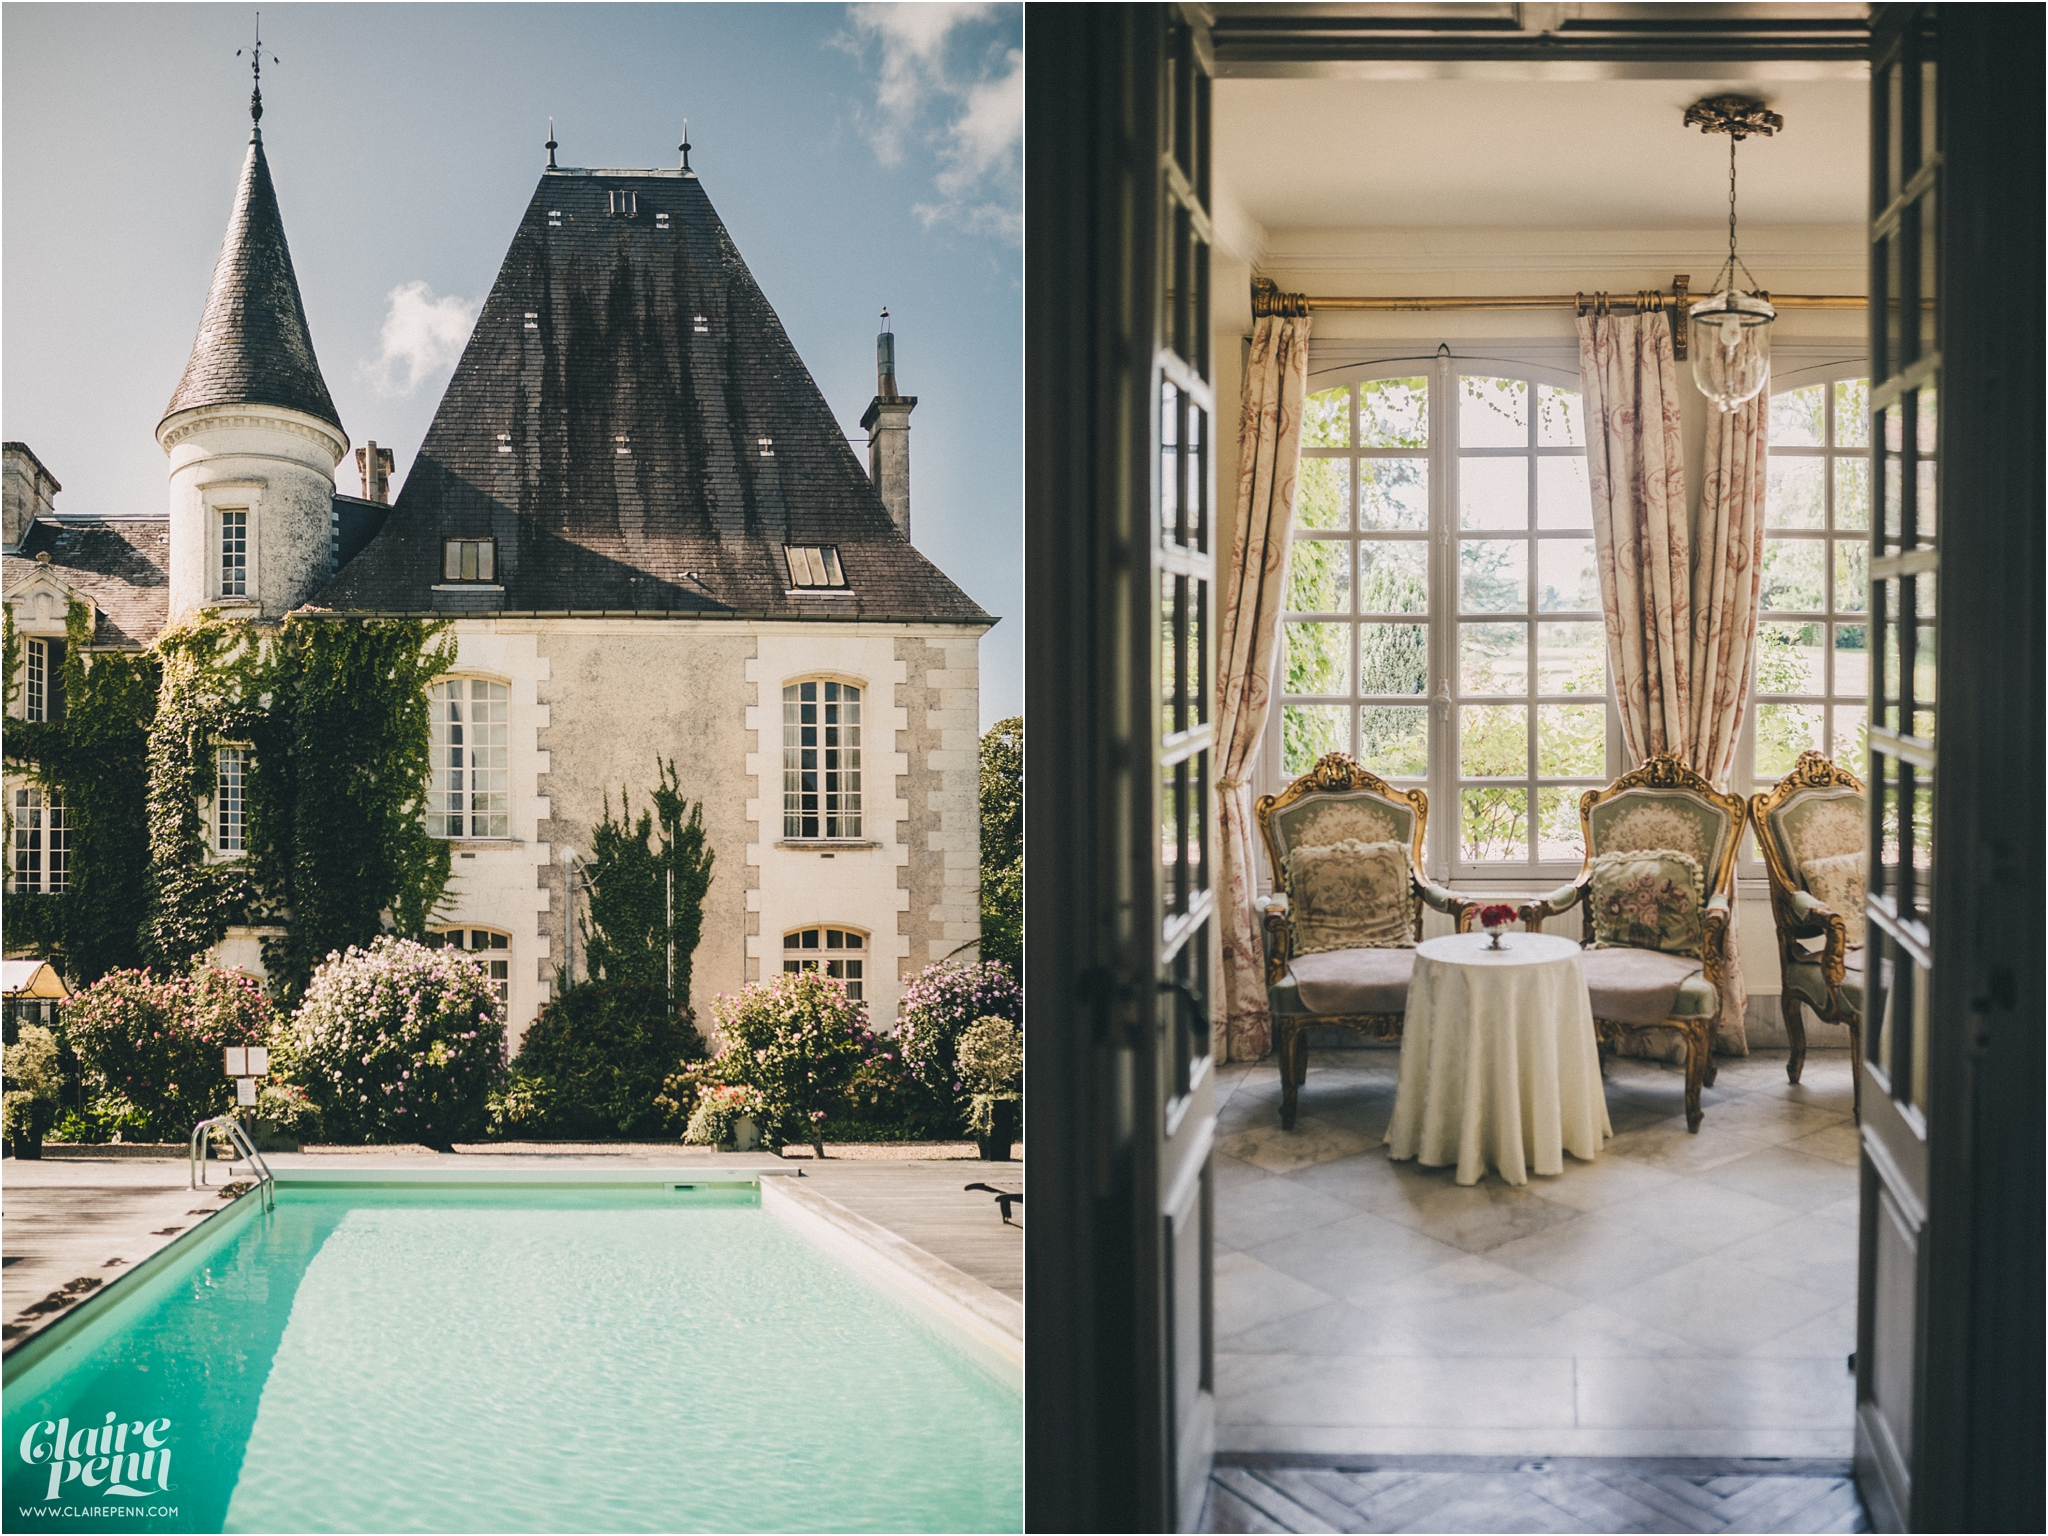 Le Chateau Charmant wedding Dordogne France_0002.jpg